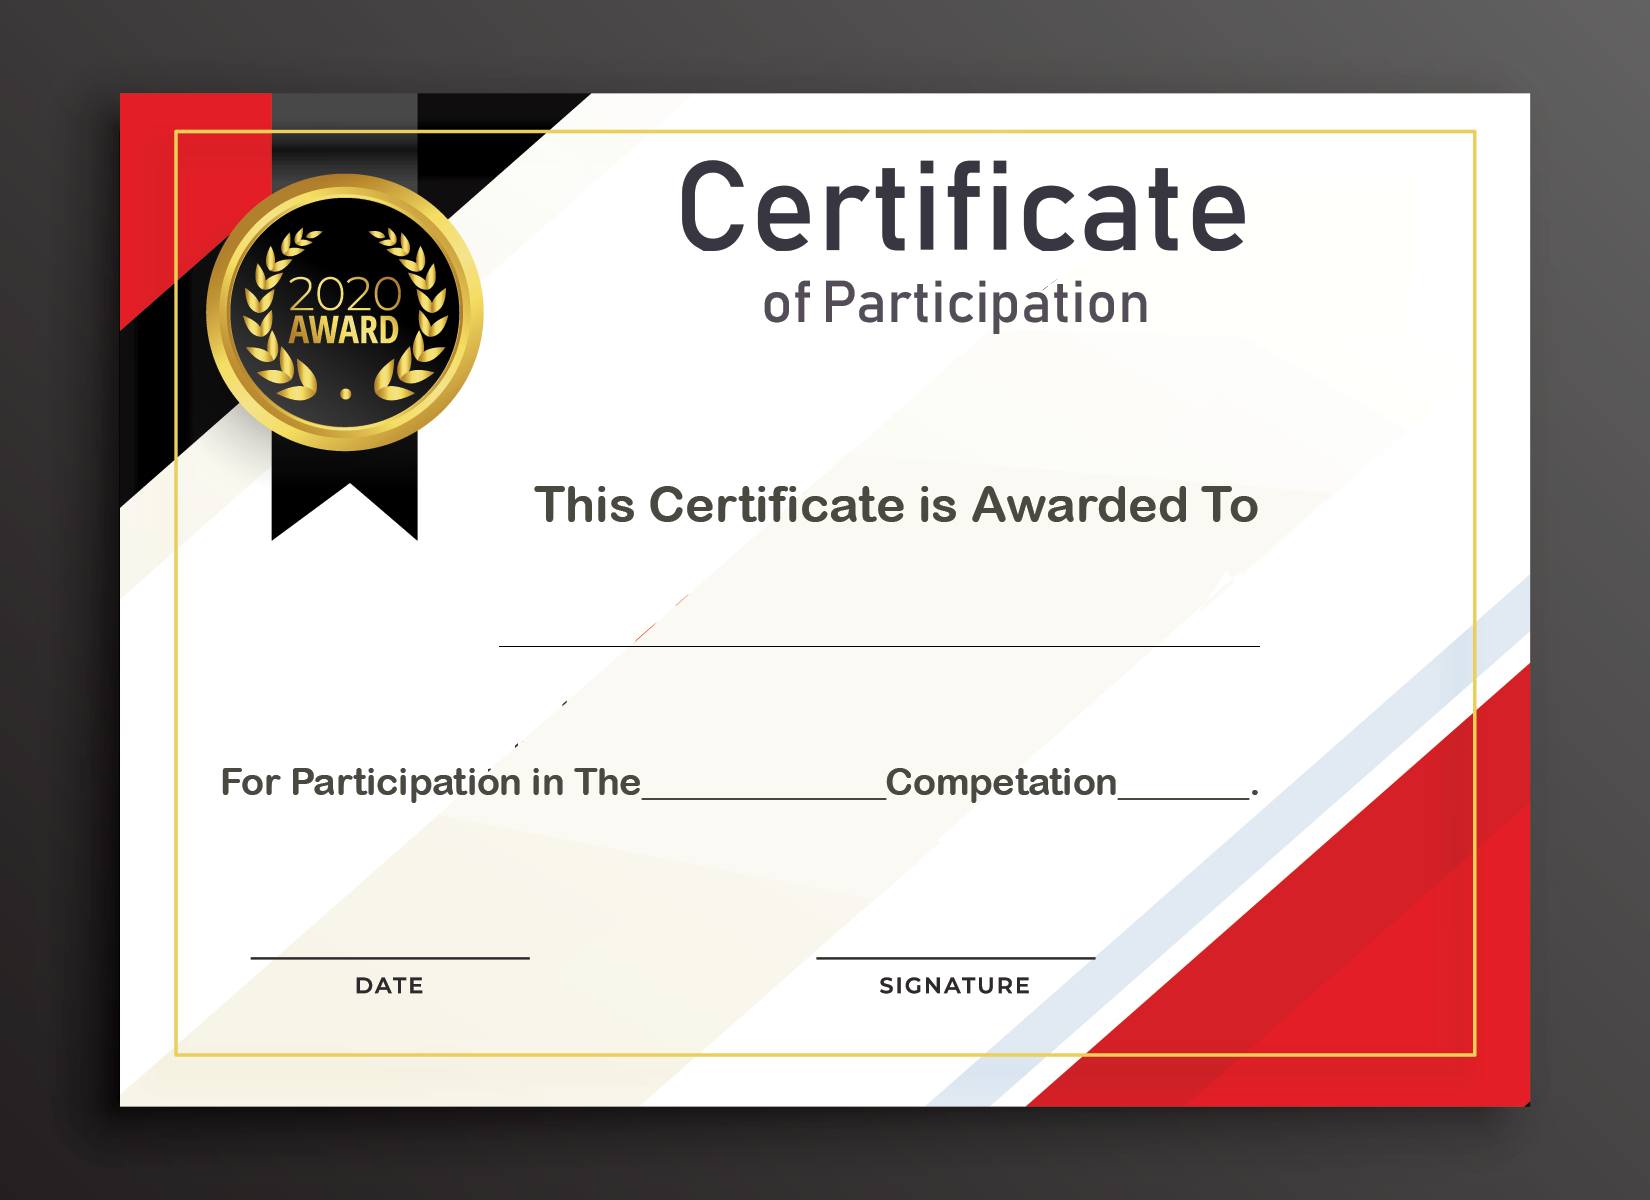 Free Sample Format Of Certificate Of Participation Template With Regard To Sample Certificate Of Participation Template